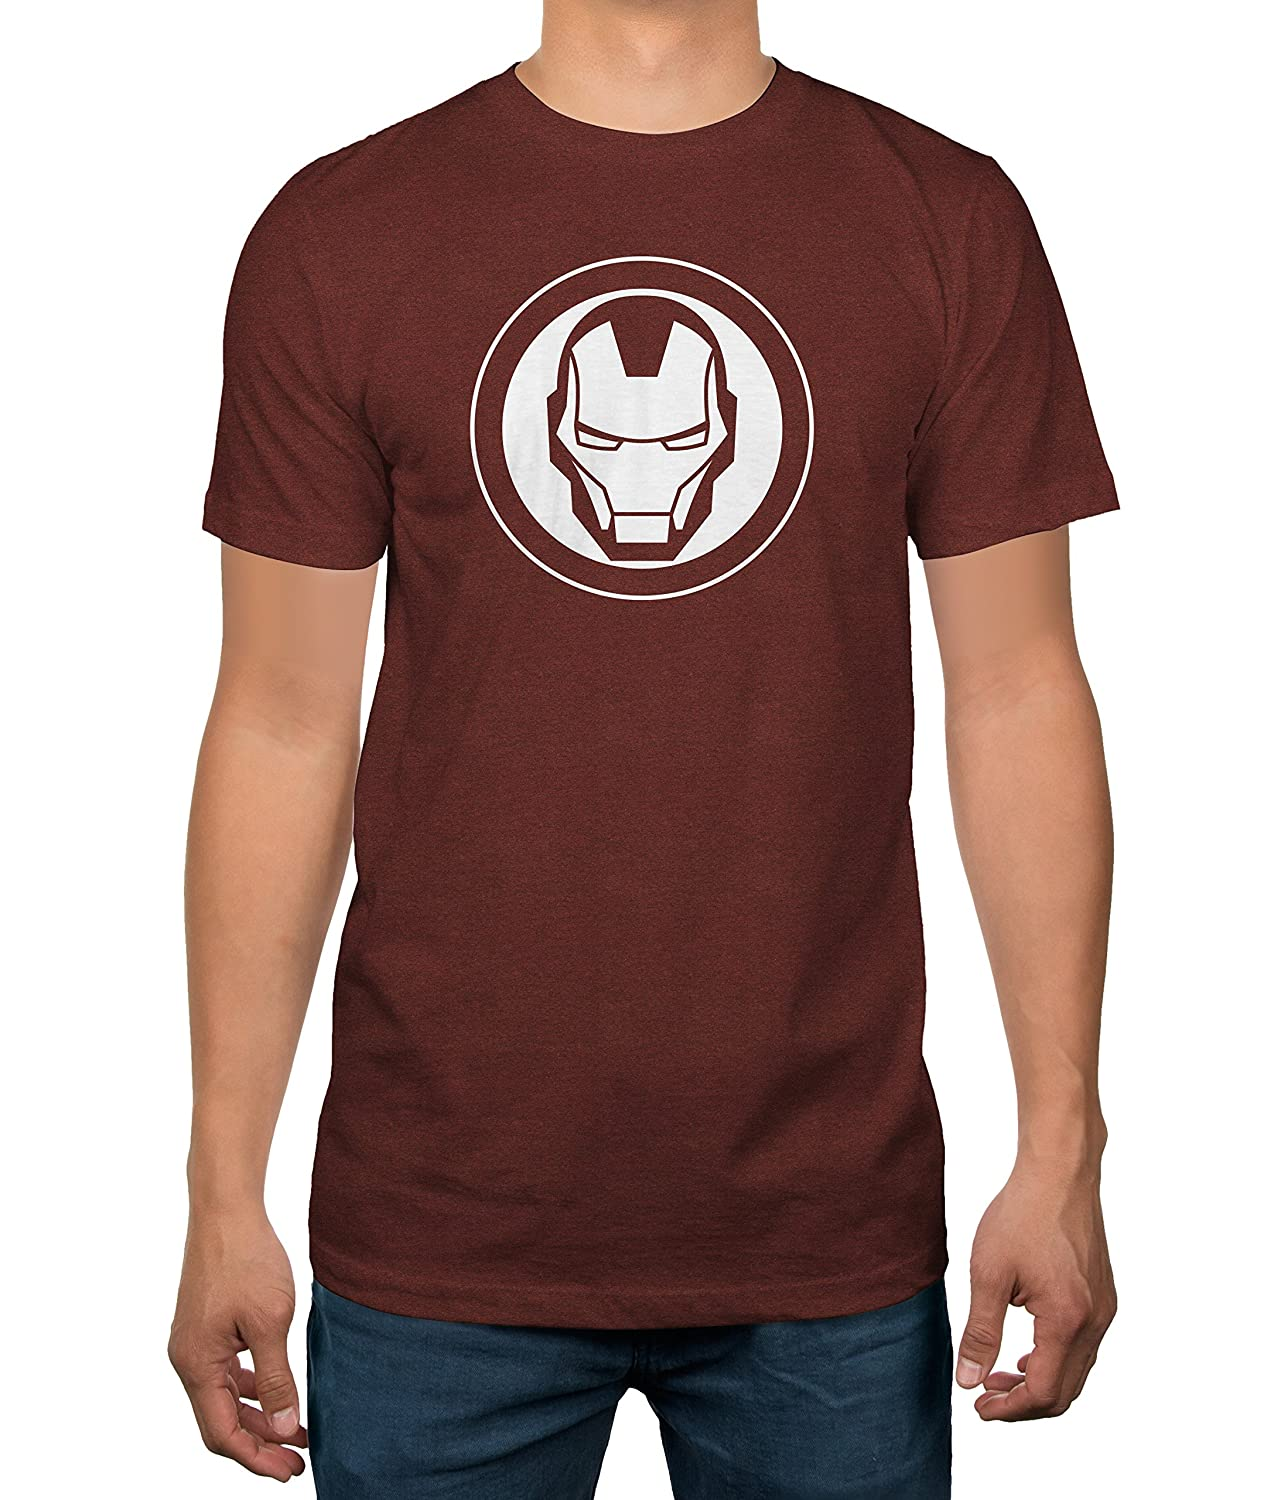 1563bc80 Amazon.com: Marvel Iron Man Logo Mens Brick Red T-Shirt (X-Large): Clothing